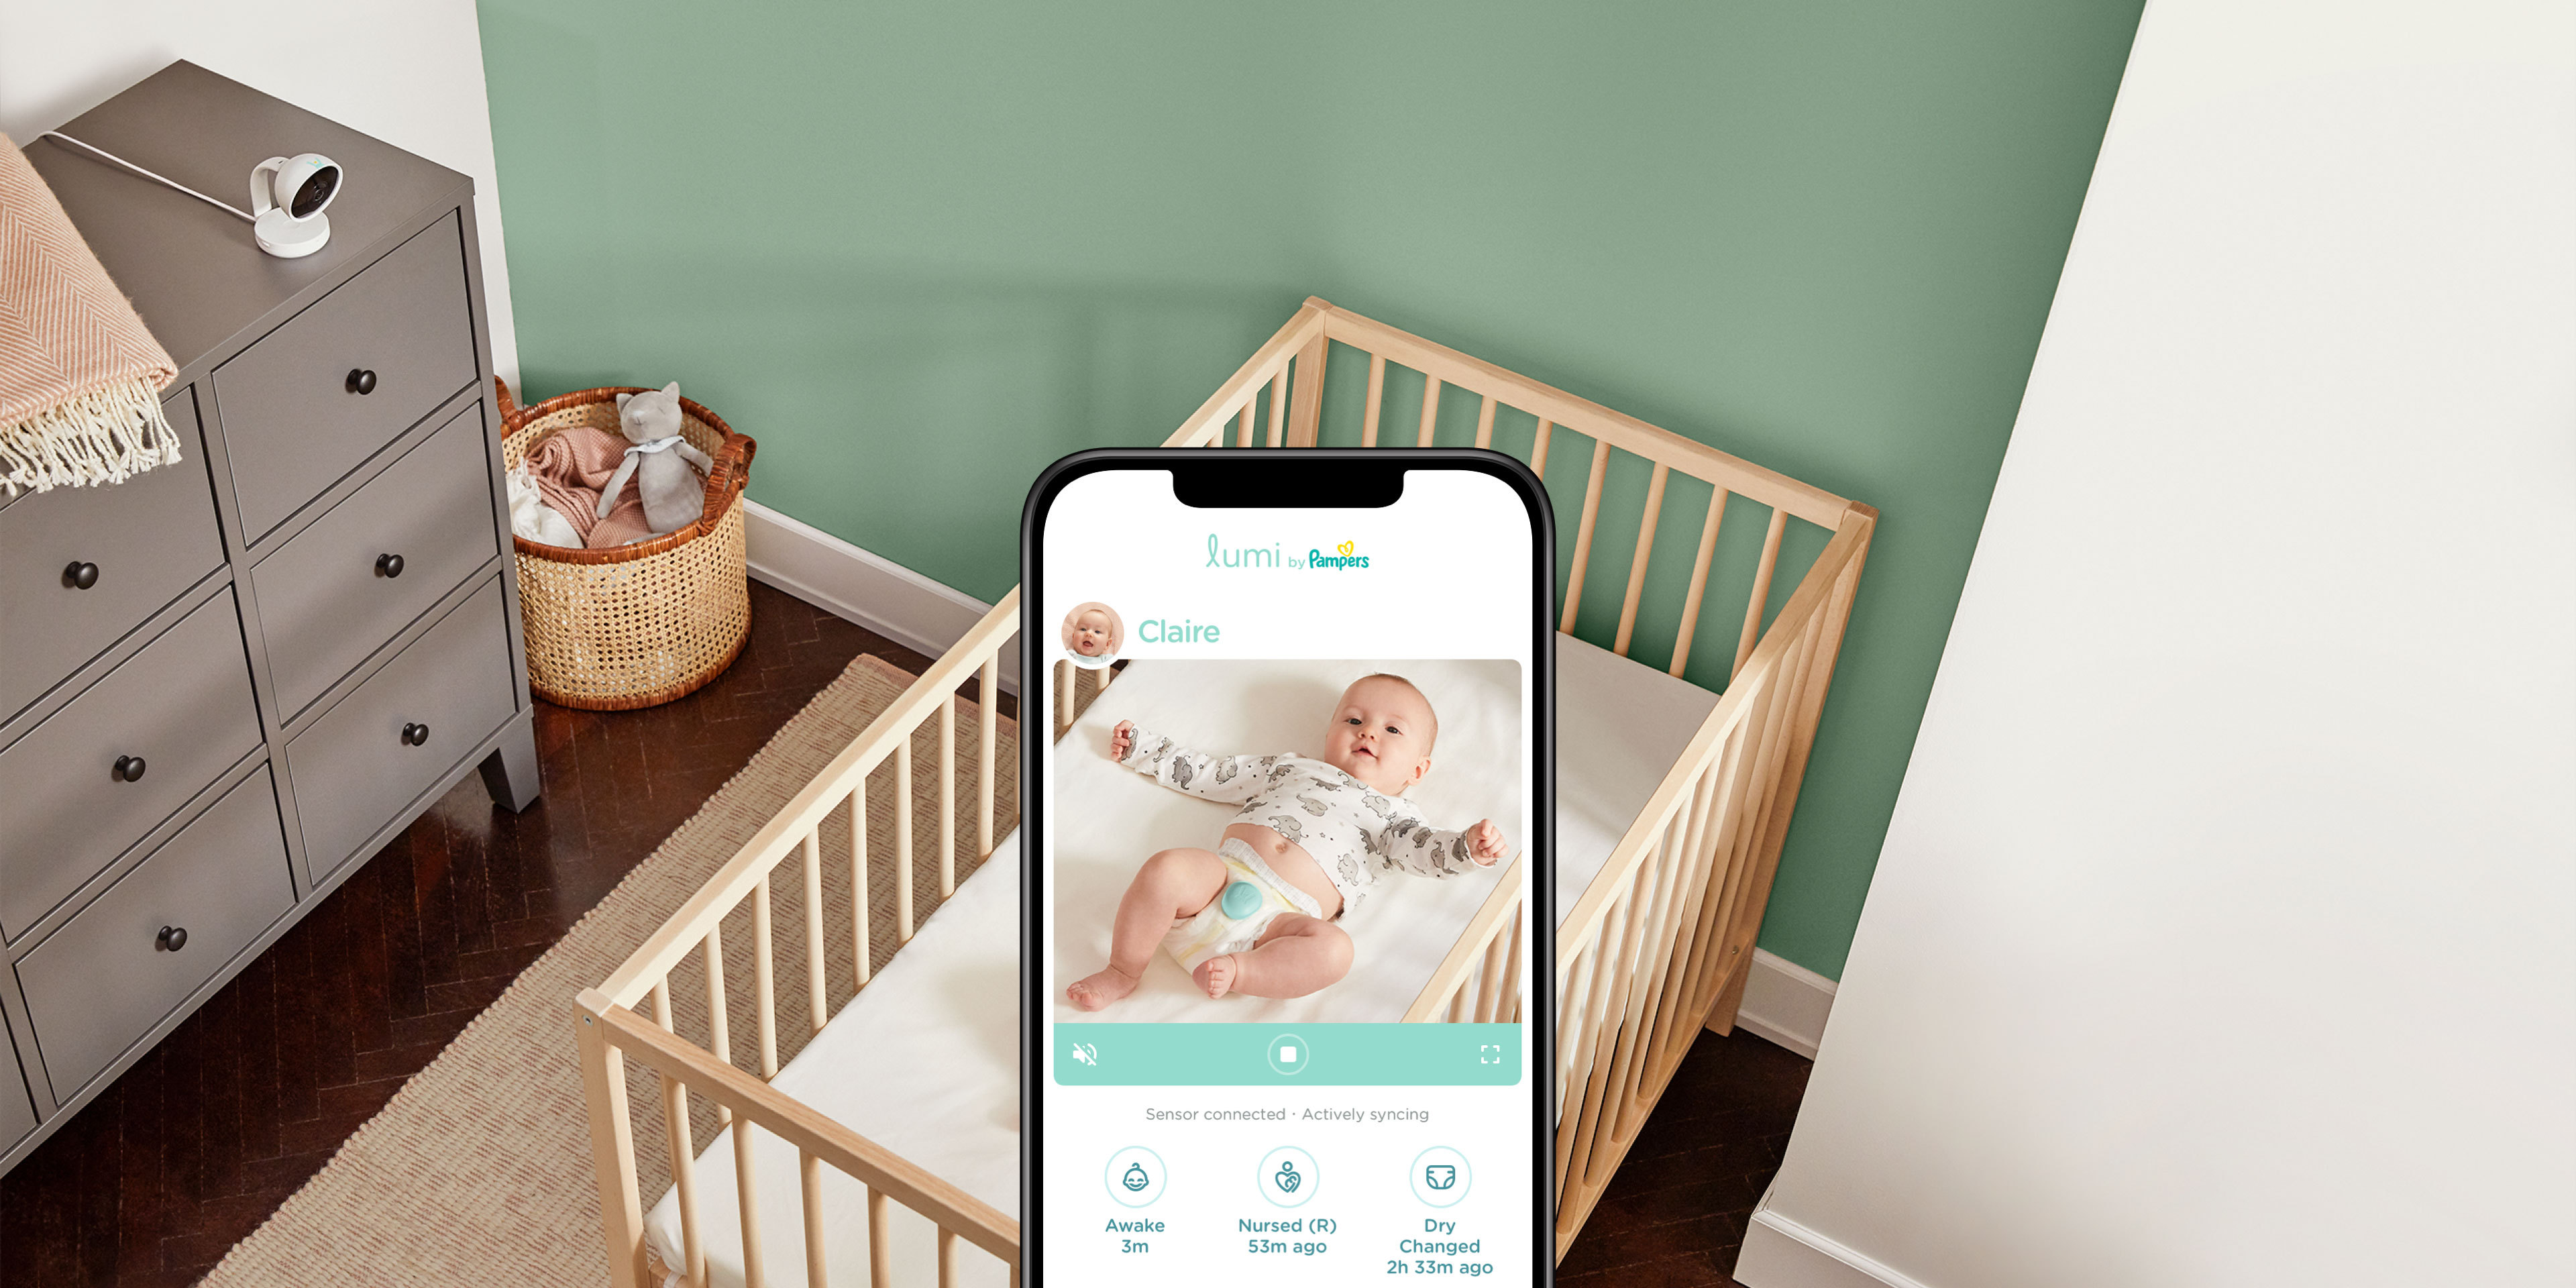 Image result for How to take care of the baby using the baby monitor?